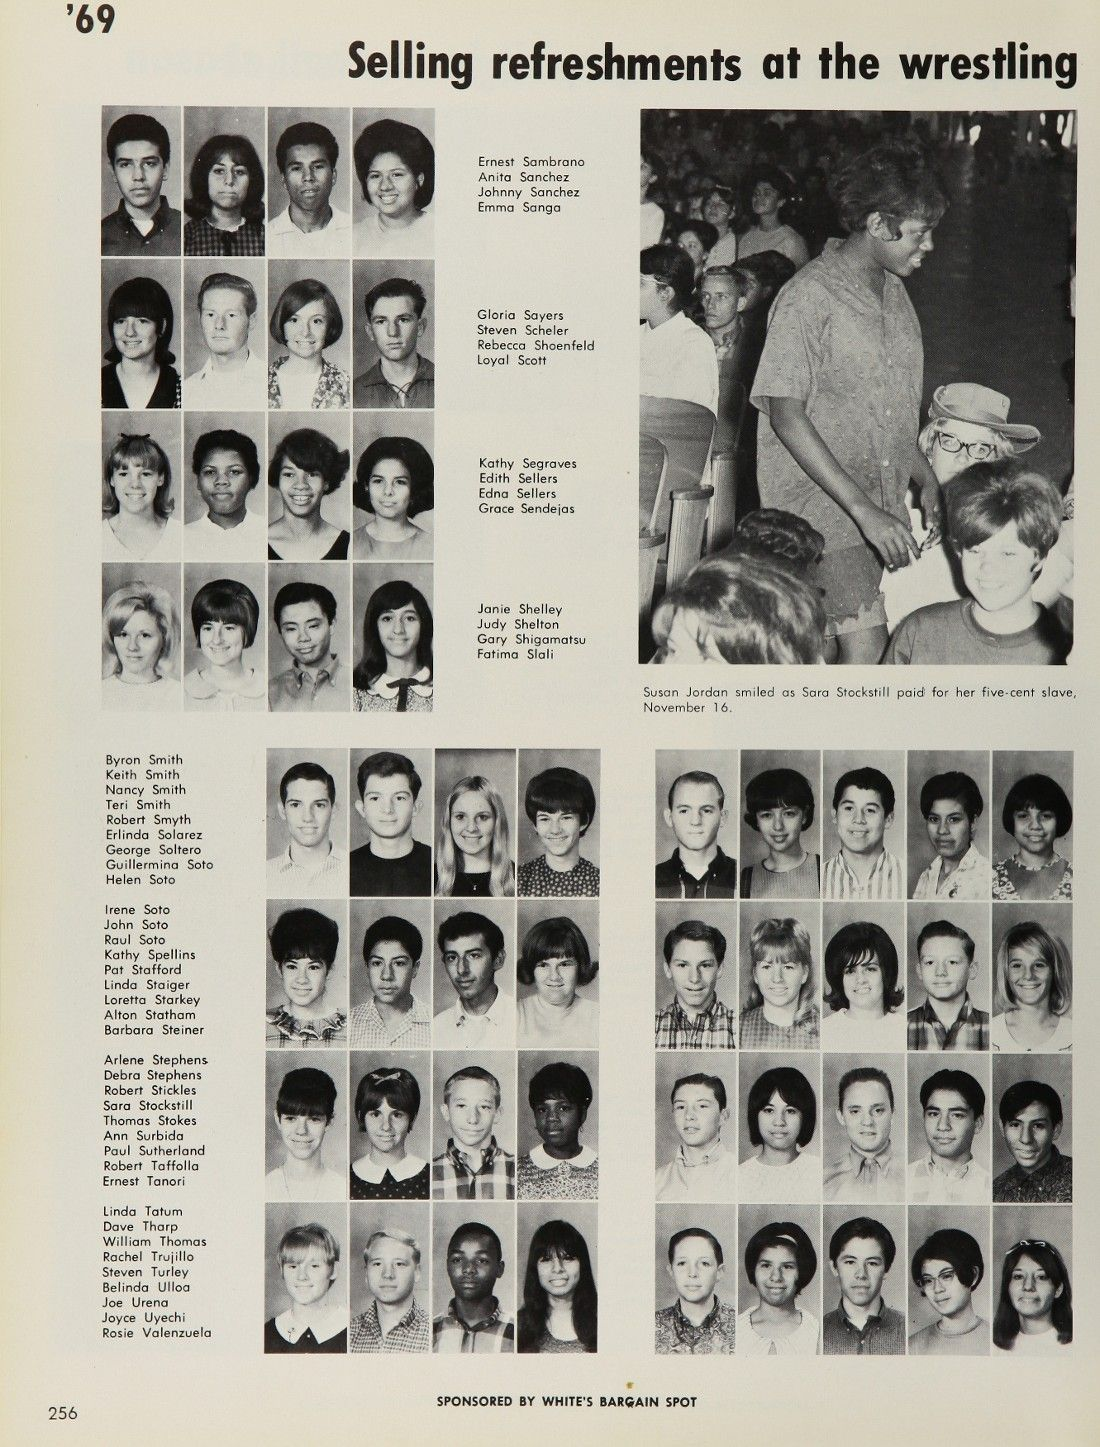 Classmates home high school yearbook pictures.